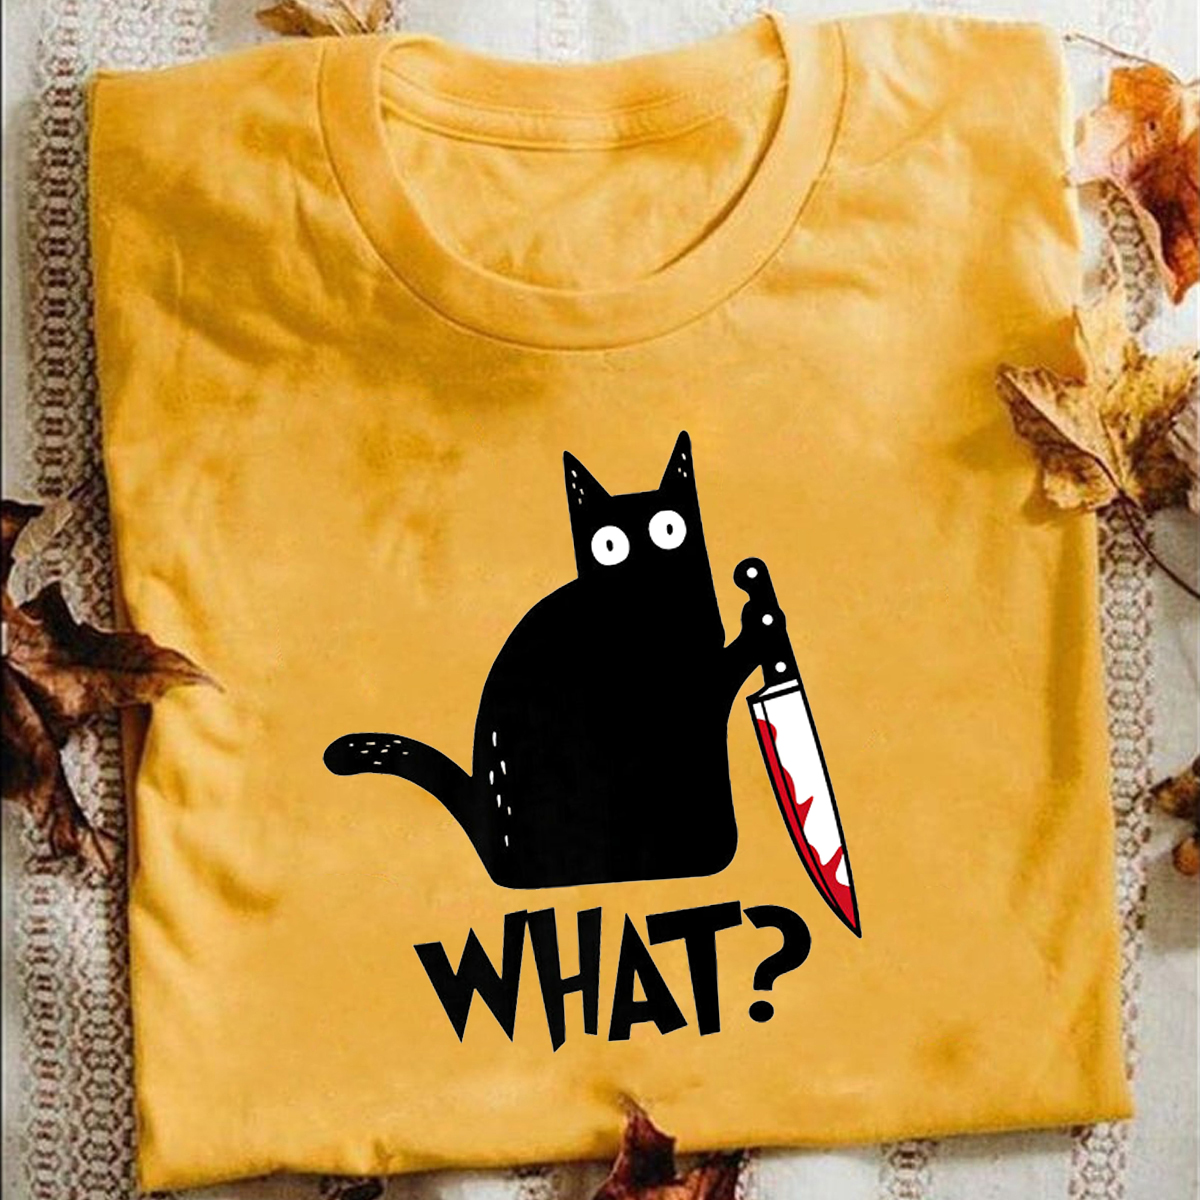 Cat What T Shirt Murderous Cat With Knife Funny Halloween Gift T Shirt Unisex Cotton T shirts for men and women image